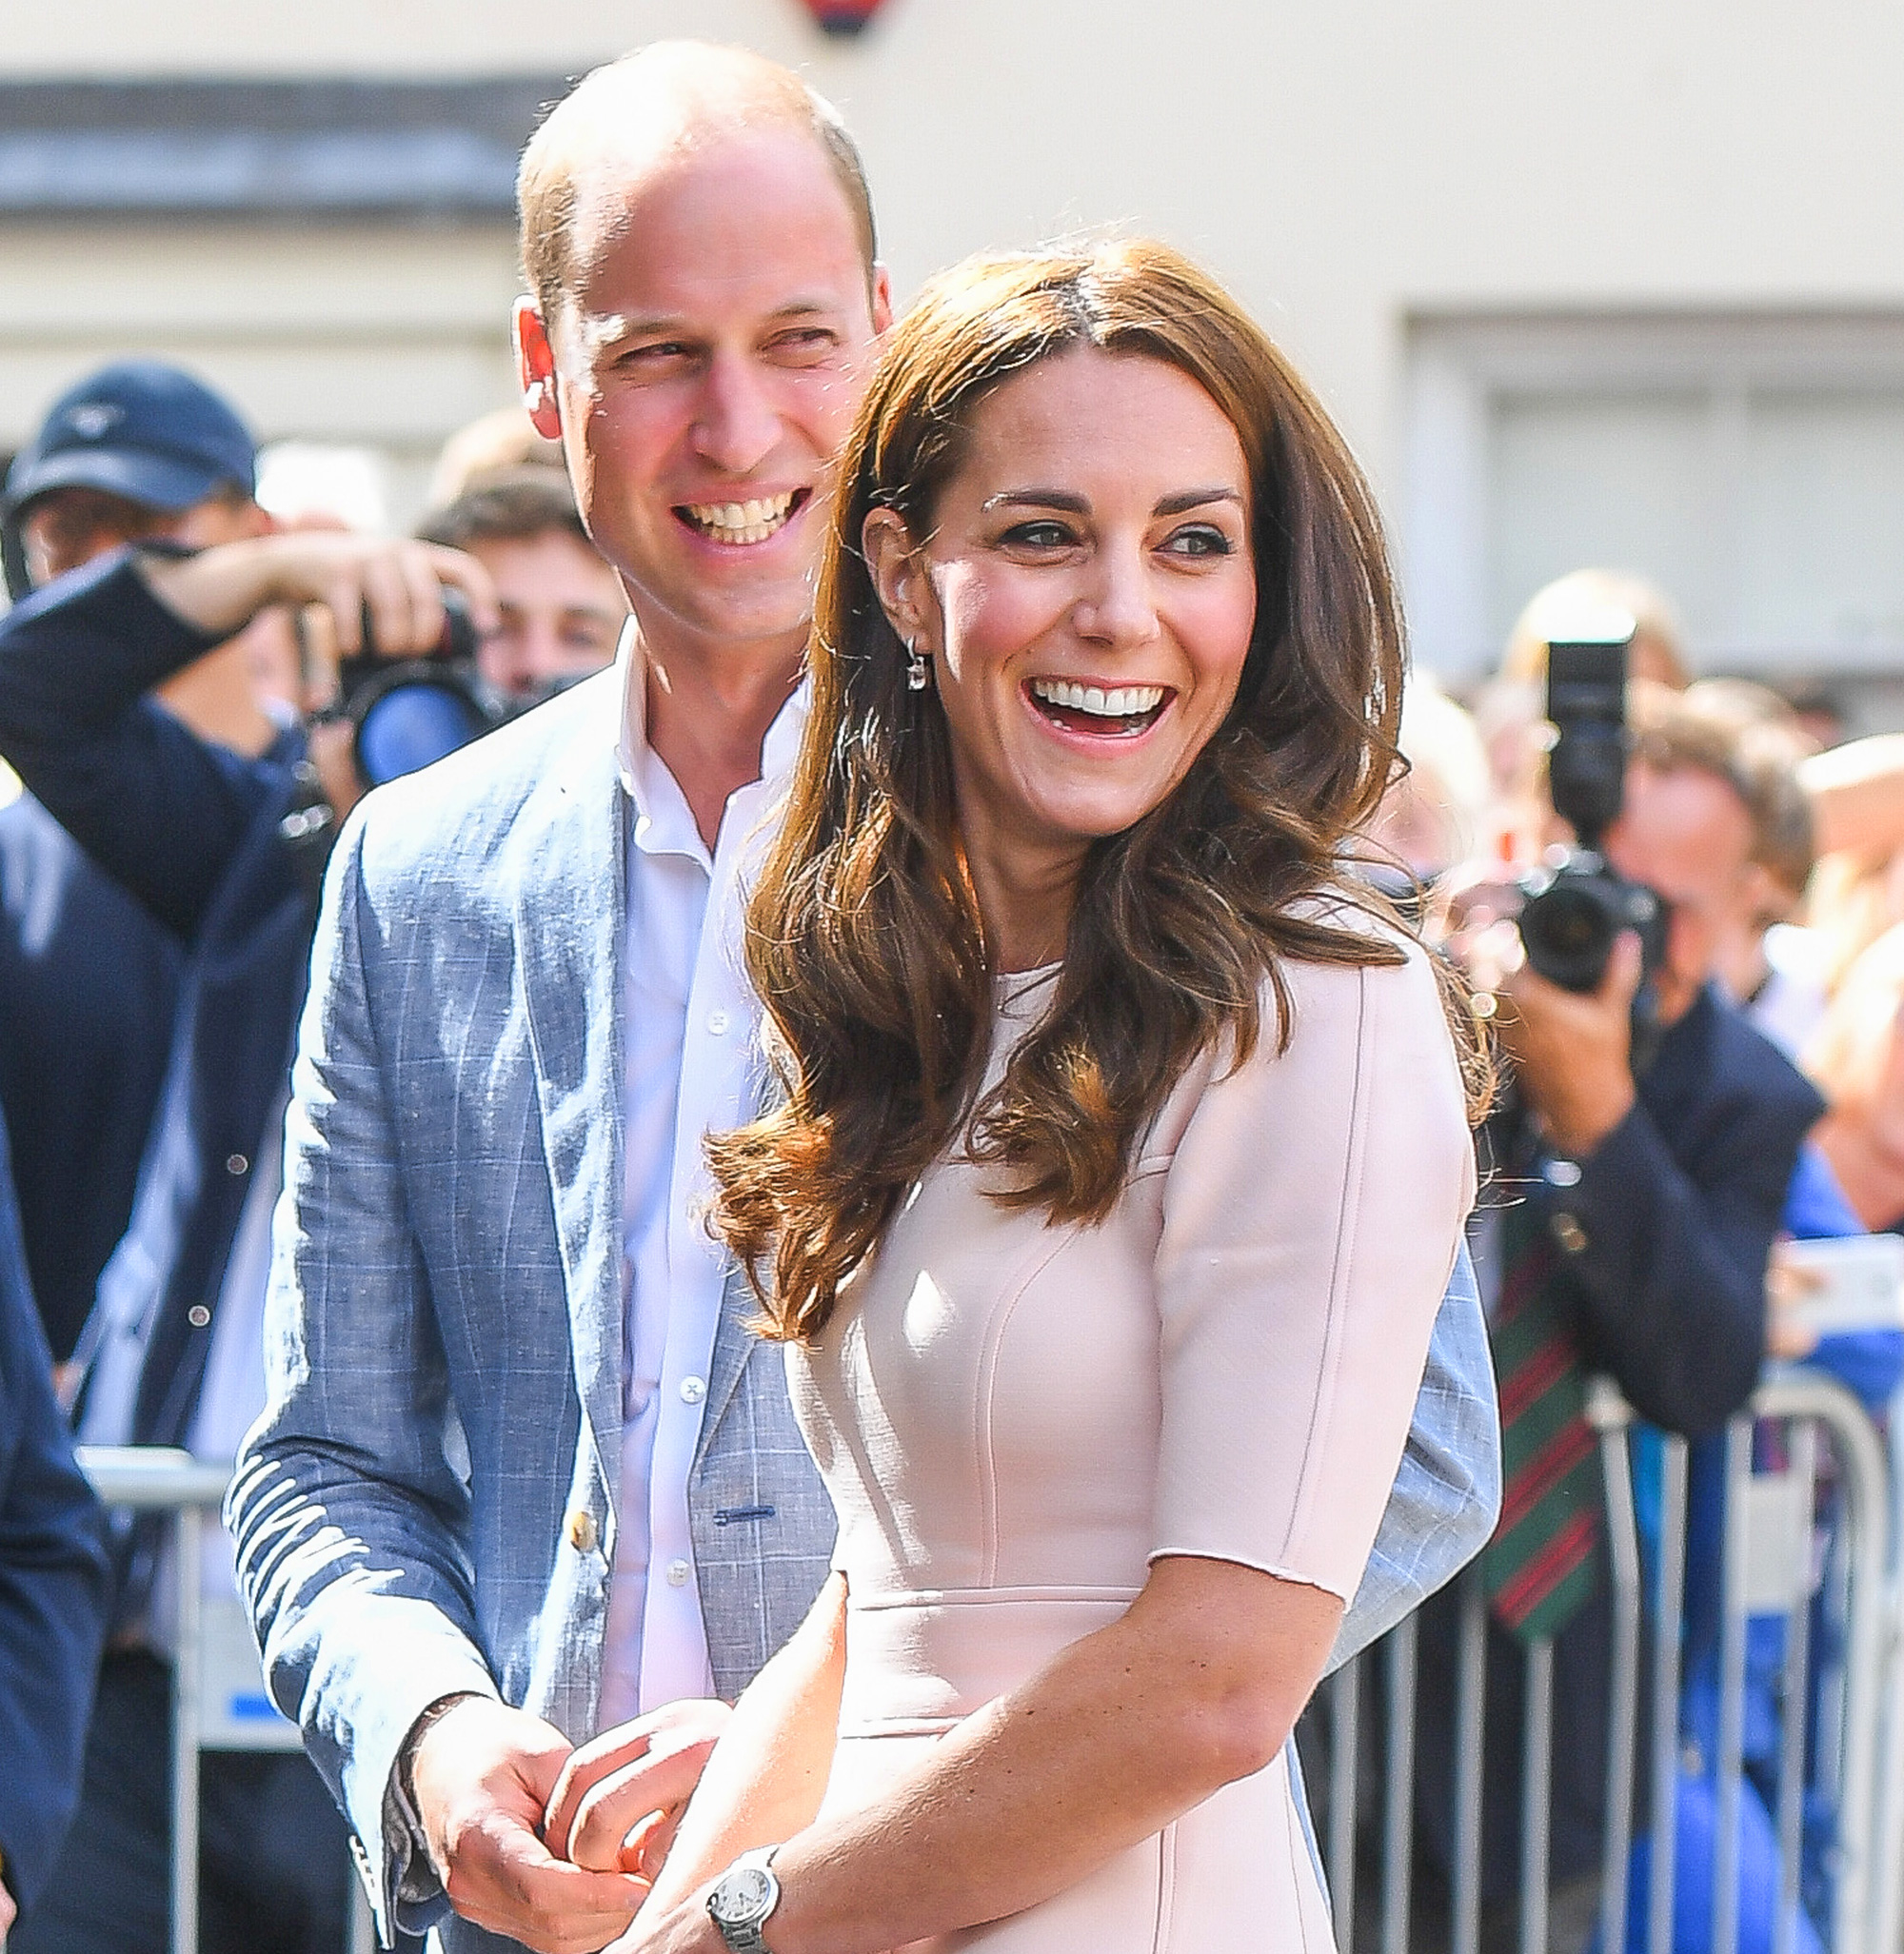 Kate Middleton Visits Sick Kids at London's New Children's Hospital